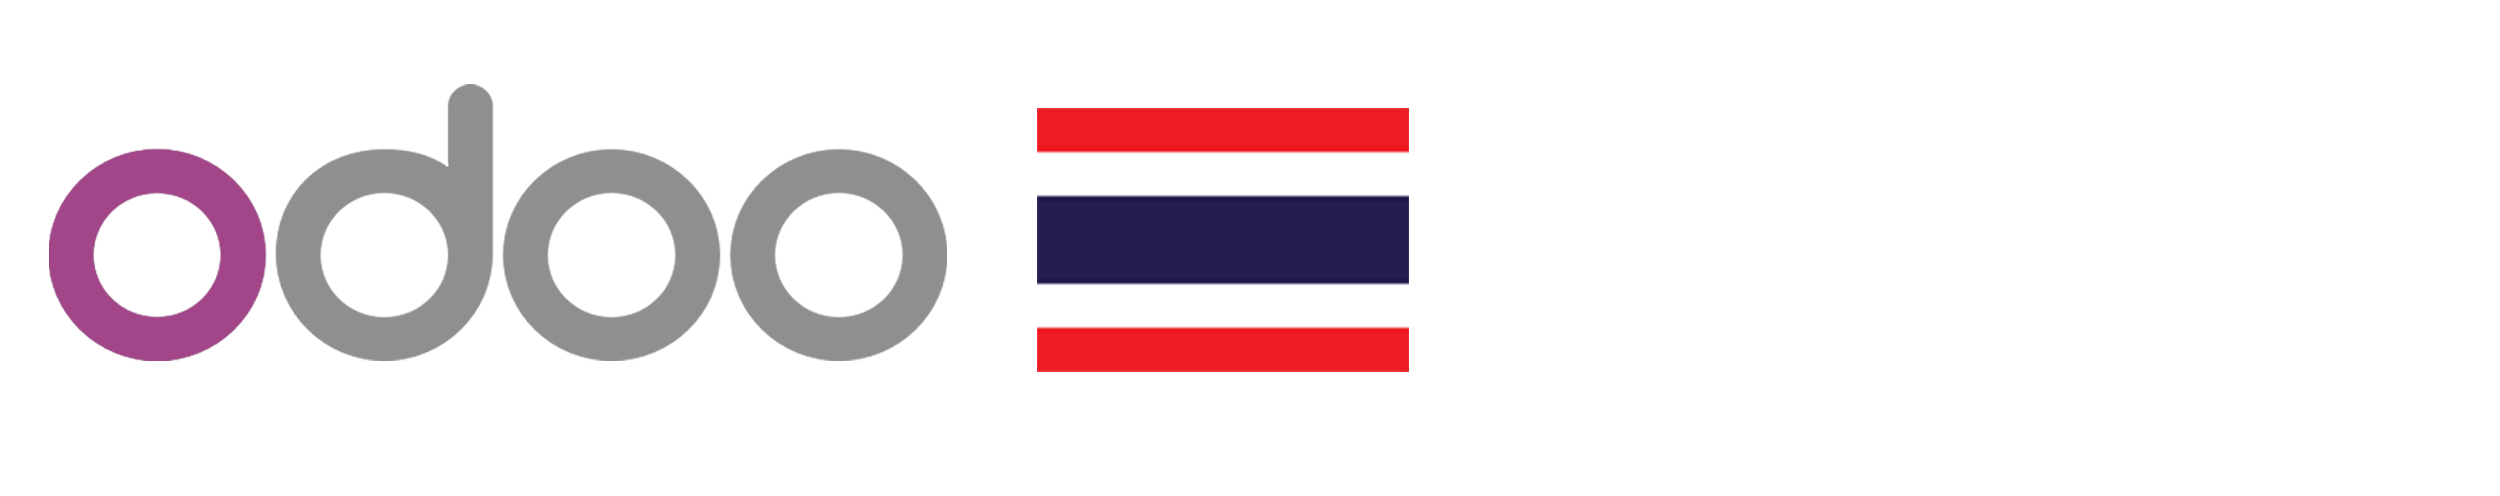 Odoothaidev – We are Odoo professional in Thailand